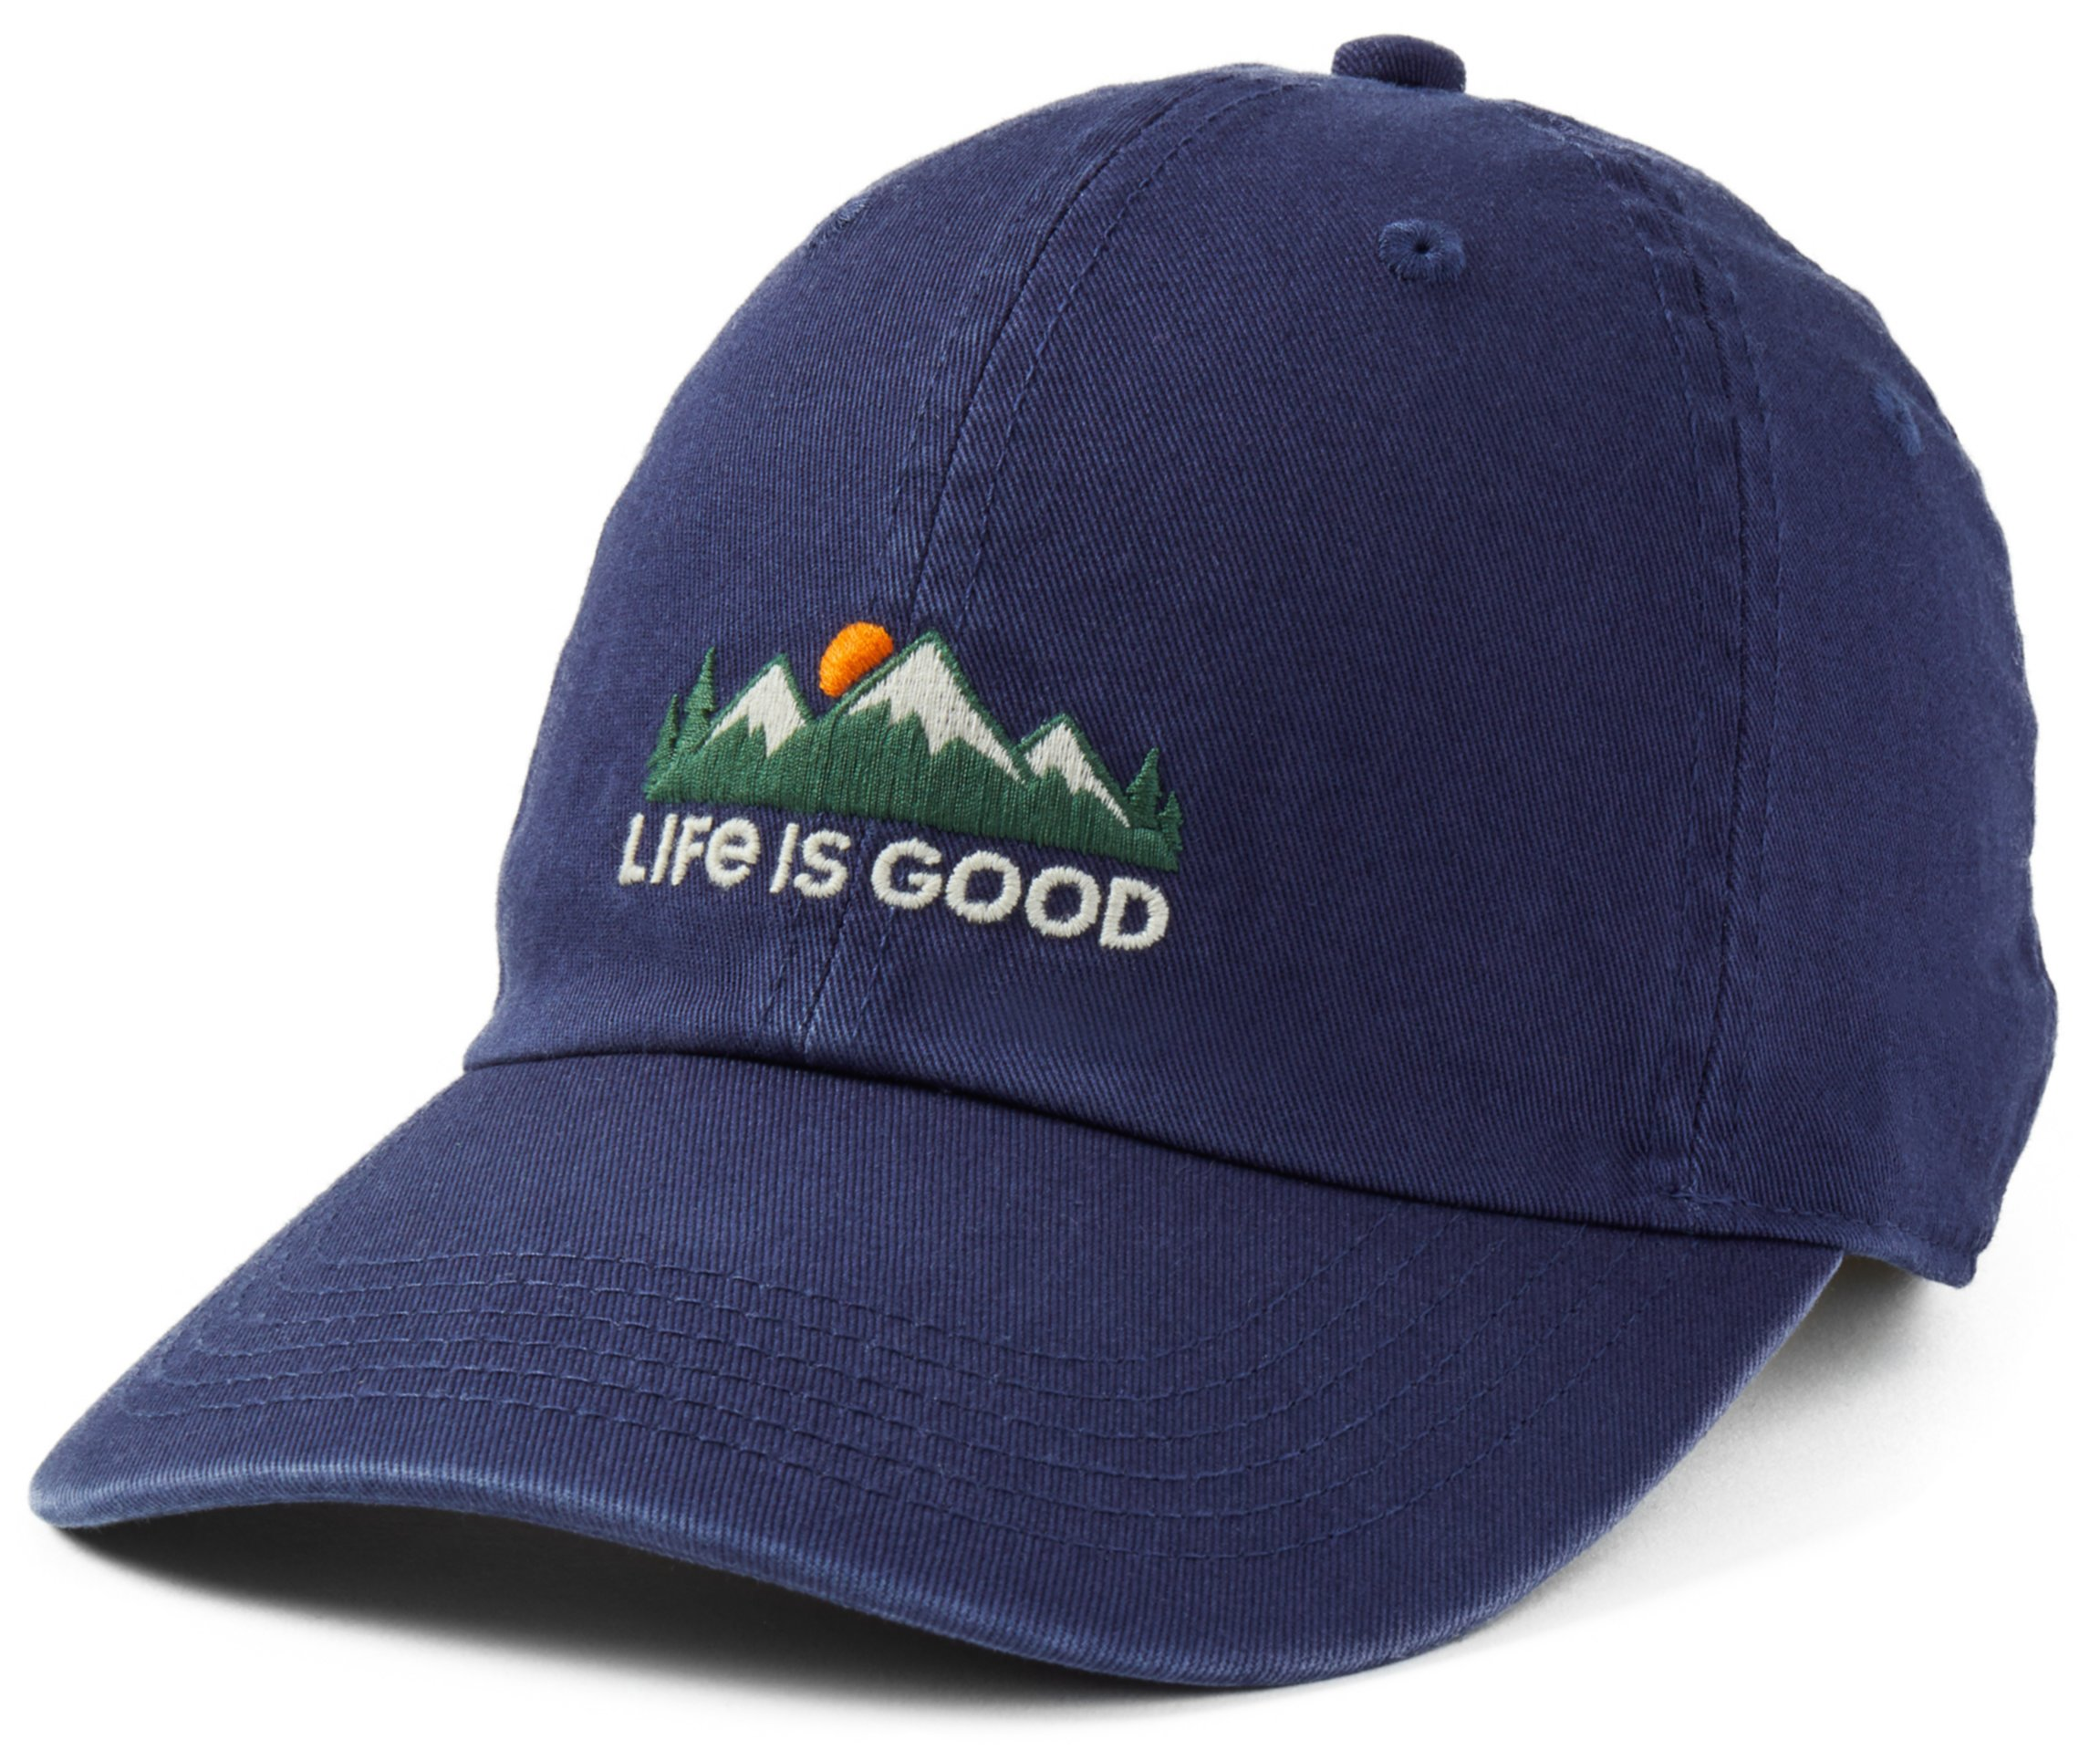 LIG Mountain Chill Cap Life is Good